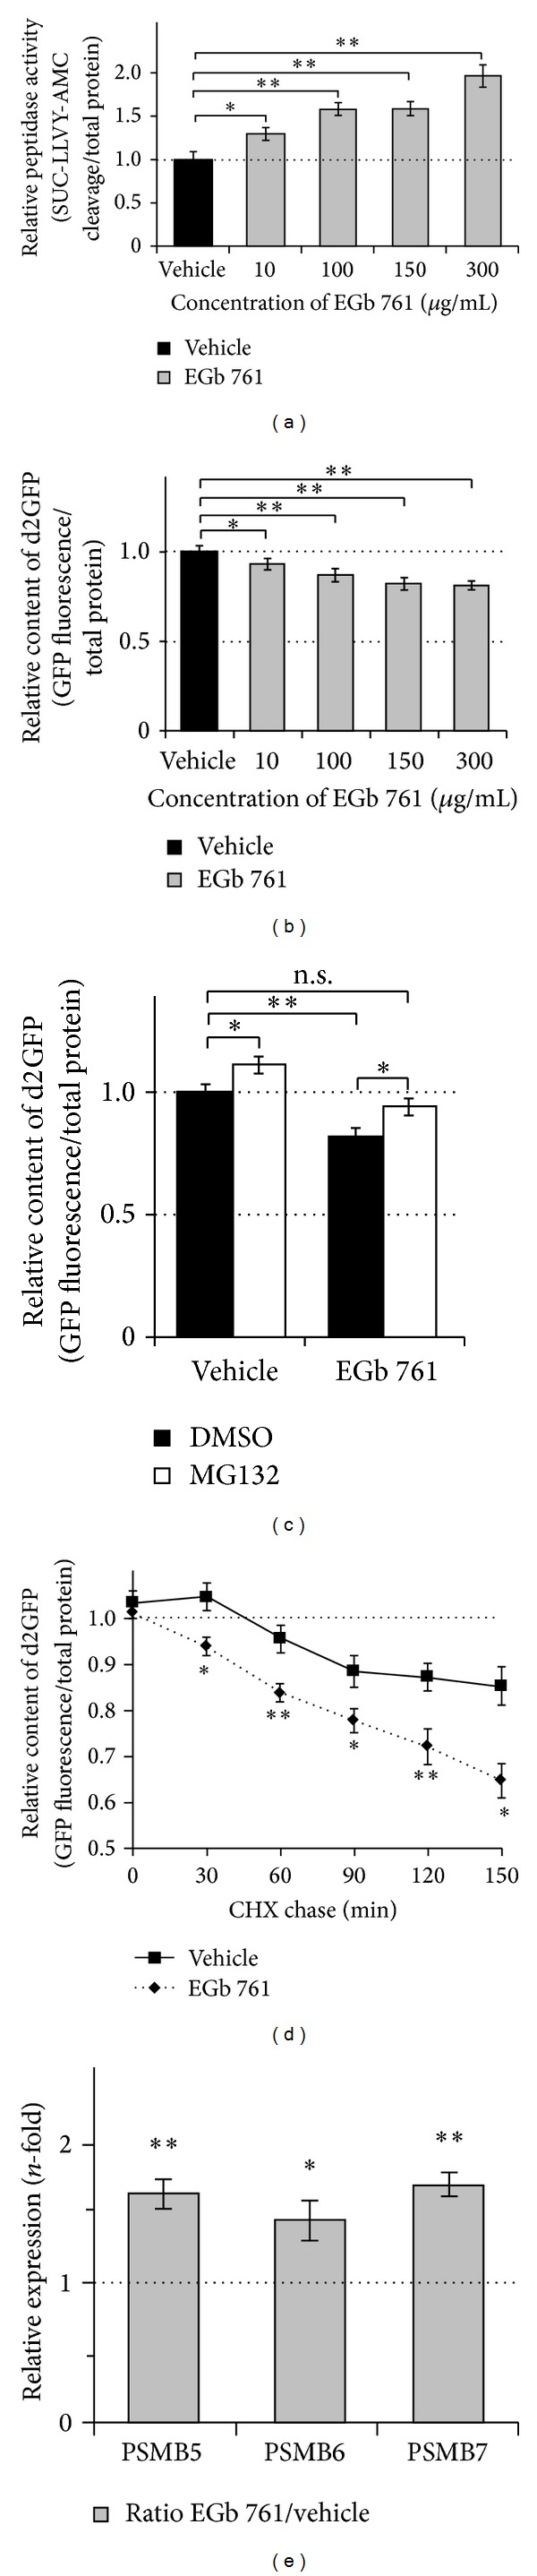 Effects of EGb 761 on basal proteasome activity. (a) HEK293 cells were treated for 24 h with indicated concentrations of EGb 761. Analysis of proteasomal peptidase (chymotrypsin-like) activity was assessed by the hydrolysis of SUC-LLVY-AMC in total cell lysates. Fluorescence of the cleaved AMC moiety was measured in the presence or absence of MG132 to achieve peptidase specificity. Values were adjusted to total protein content. Activity of vehicle-treated cells was arbitrarily set to 1; n = 4. (b–d) HEK293 cells with stable expressions of the proteasome reporter protein d2GFP (d2GFP-HEK) were treated for 24 h with indicated concentrations of EGb 761. Measurement of GFP fluorescence was used to investigate proteasomal degradation of d2GFP proteins. All achieved fluorescence intensities were finally adjusted to total protein content. (b) Cells were incubated with increasing concentrations of EGb 761 to investigate the specific, dose-depending effect on proteasome activity (a). Measurement of GFP fluorescence was used to assess the remaining d2GFP protein content as an indicator for an enhanced protein degradation by the proteasome. Values of vehicle-treated cells were arbitrarily set to 1. n = 5. (c) Previous assayed cells ((b); vehicle and 150 μ g/mL EGb 761 treatments) were additionally incubated for 2 h with the proteasome inhibitor MG132 or DMSO as control. The addition of MG132 led to an increase of fluorescence intensities in control and EGb 761-treated cells. Inhibition of proteasome activity showed the specific modulation of GFP fluorescence through proteasomal d2GFP degradation. Values of vehicle-treated cells without MG132 were arbitrarily set to 1. n = 4. (d) Cells were treated for 24 h with 150 μ g/mL EGb 761 or vehicle, followed by a chase with cycloheximide (CHX) to block synthesis of new d2GFP. Degradation kinetics of d2GFP was analyzed by measuring GFP fluorescence every 30 min. Fluorescence decay induced by CHX indicated the specificity of proteasomal